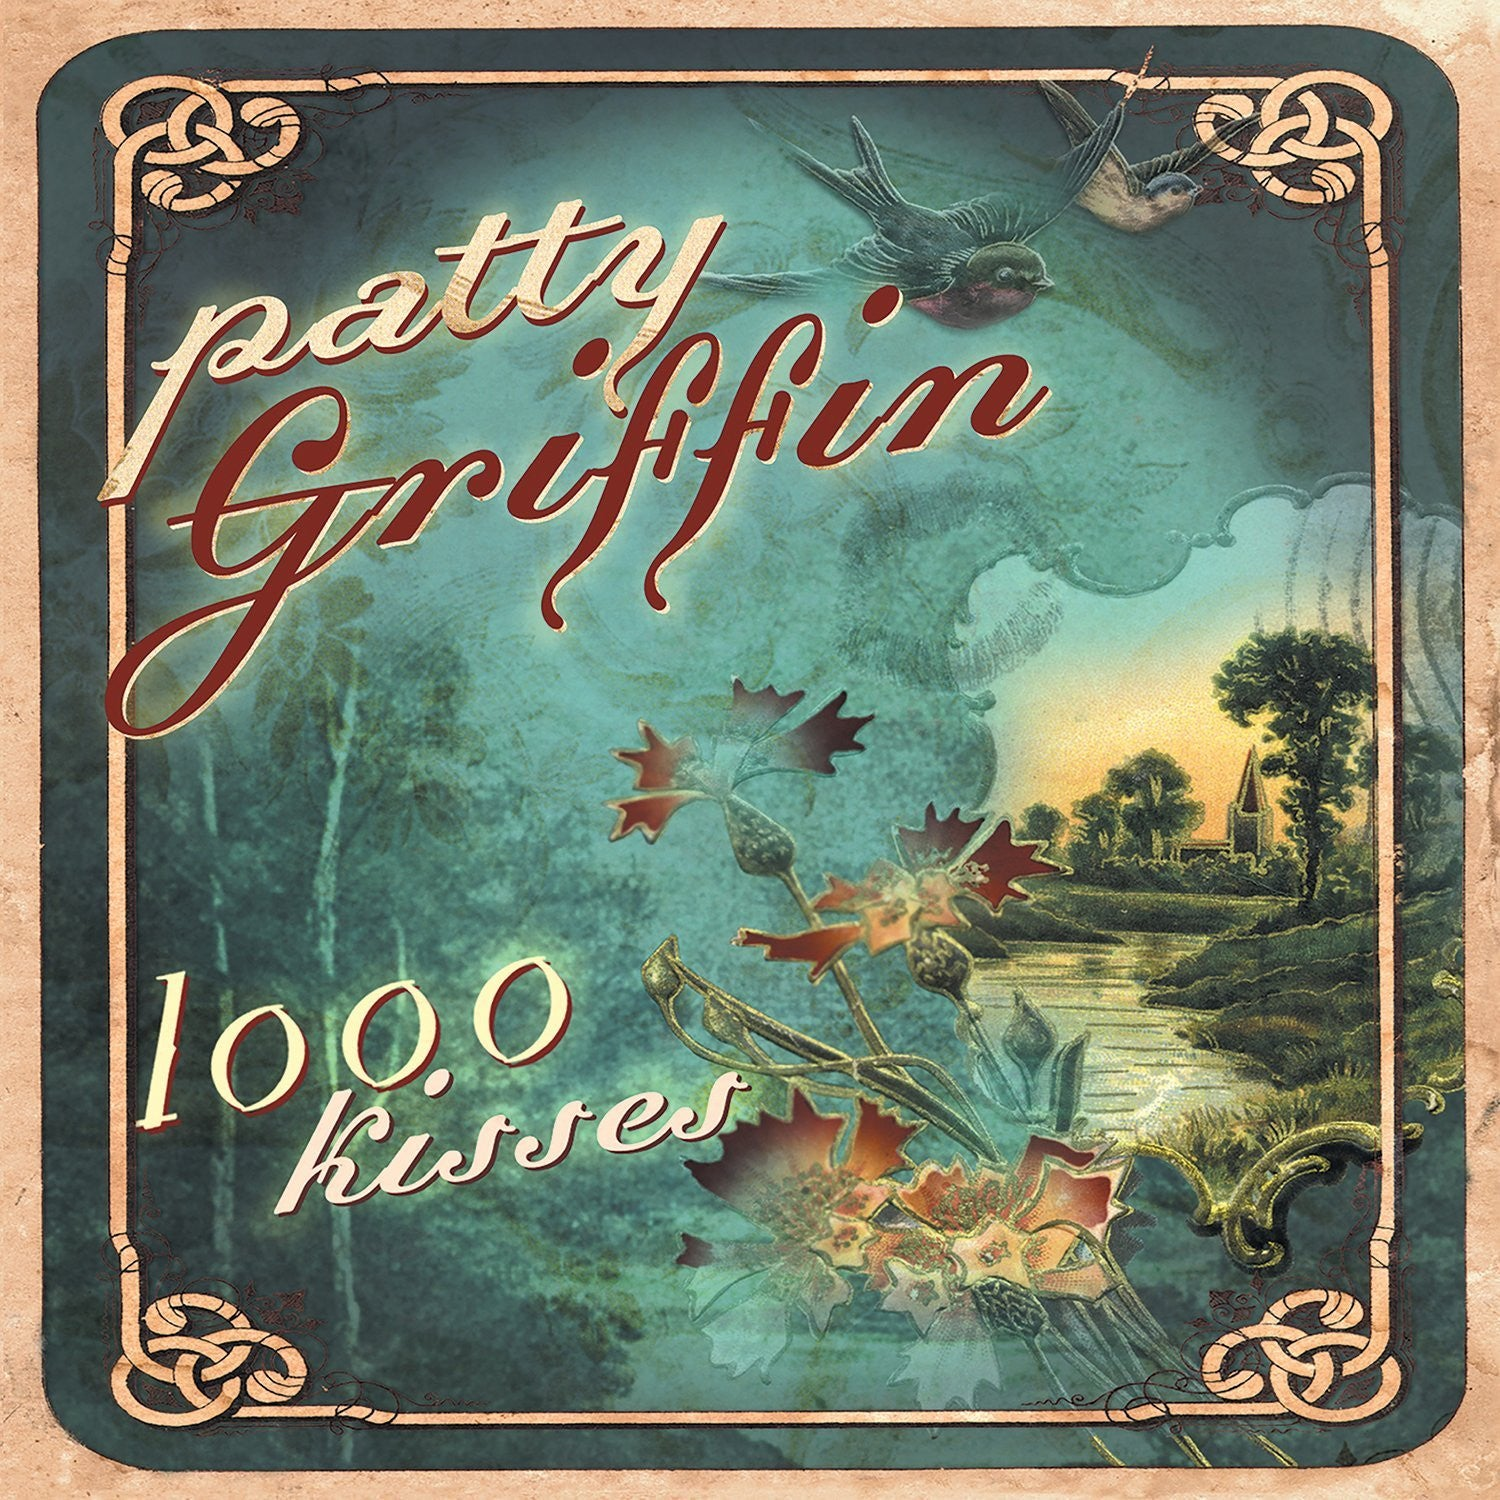 Patti Griffin - 1000 Kisses LP